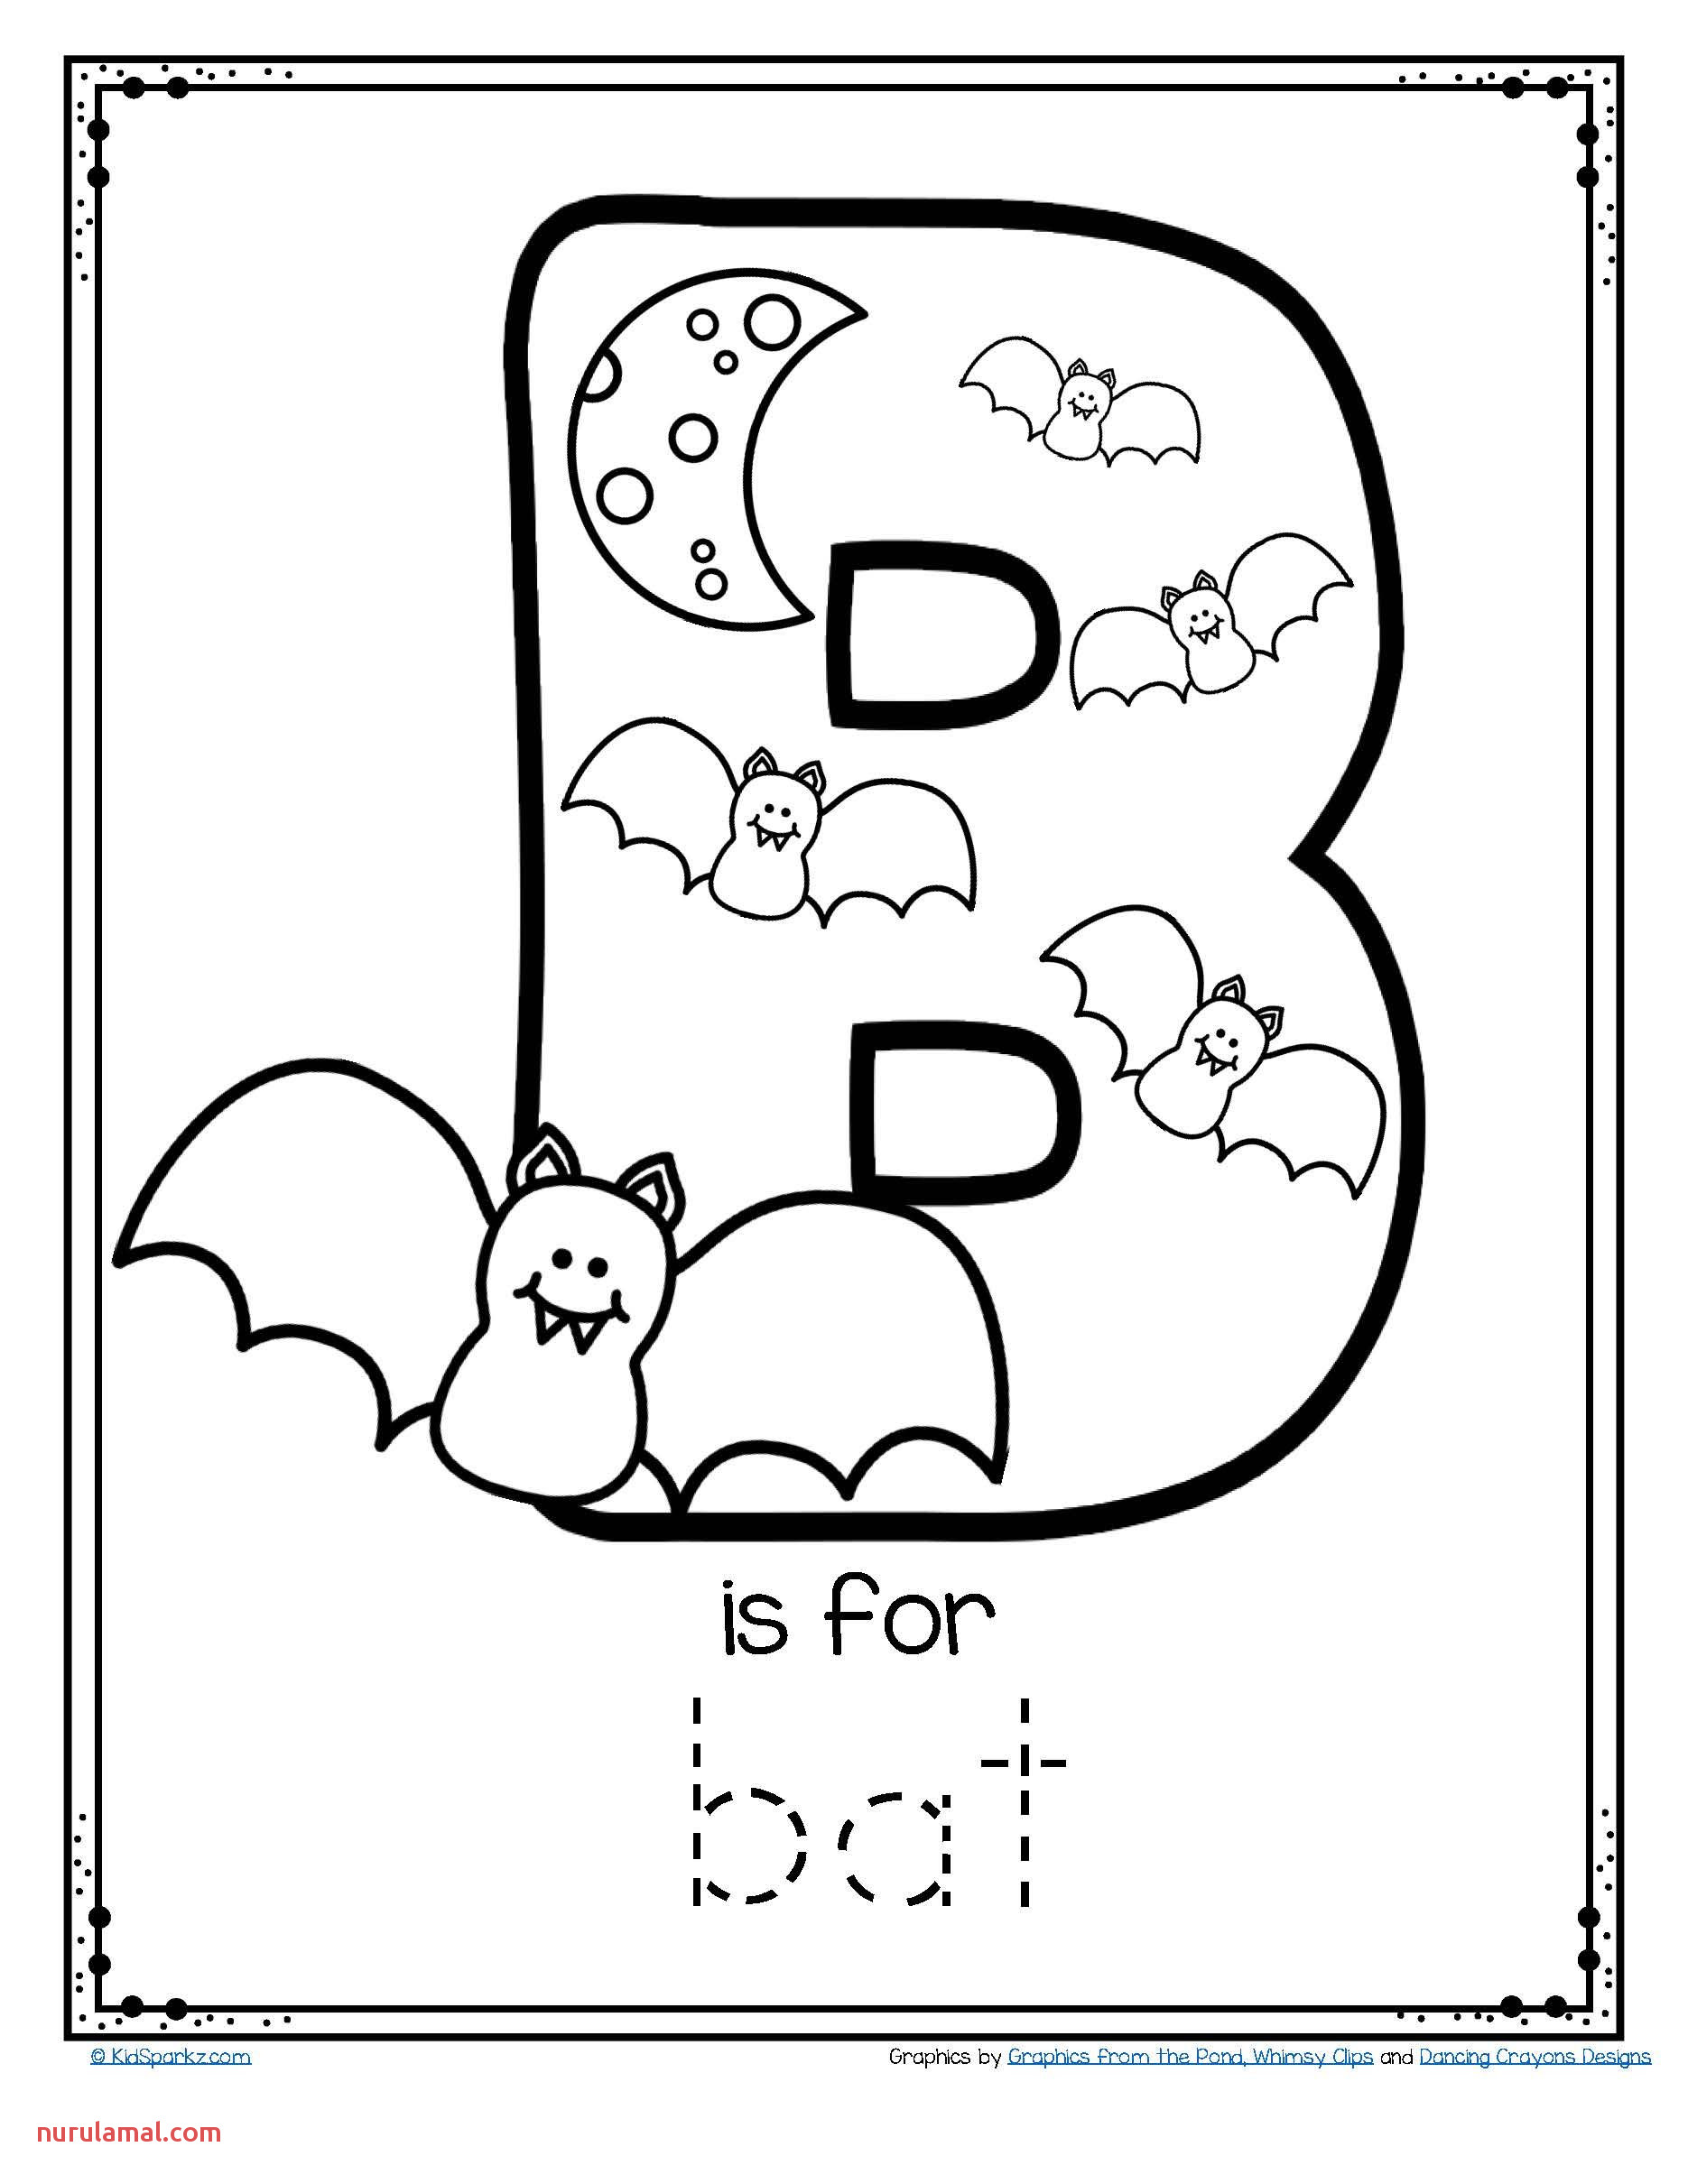 4 Year Old Worksheets Printable Lowercase Tracing Nurul Amal